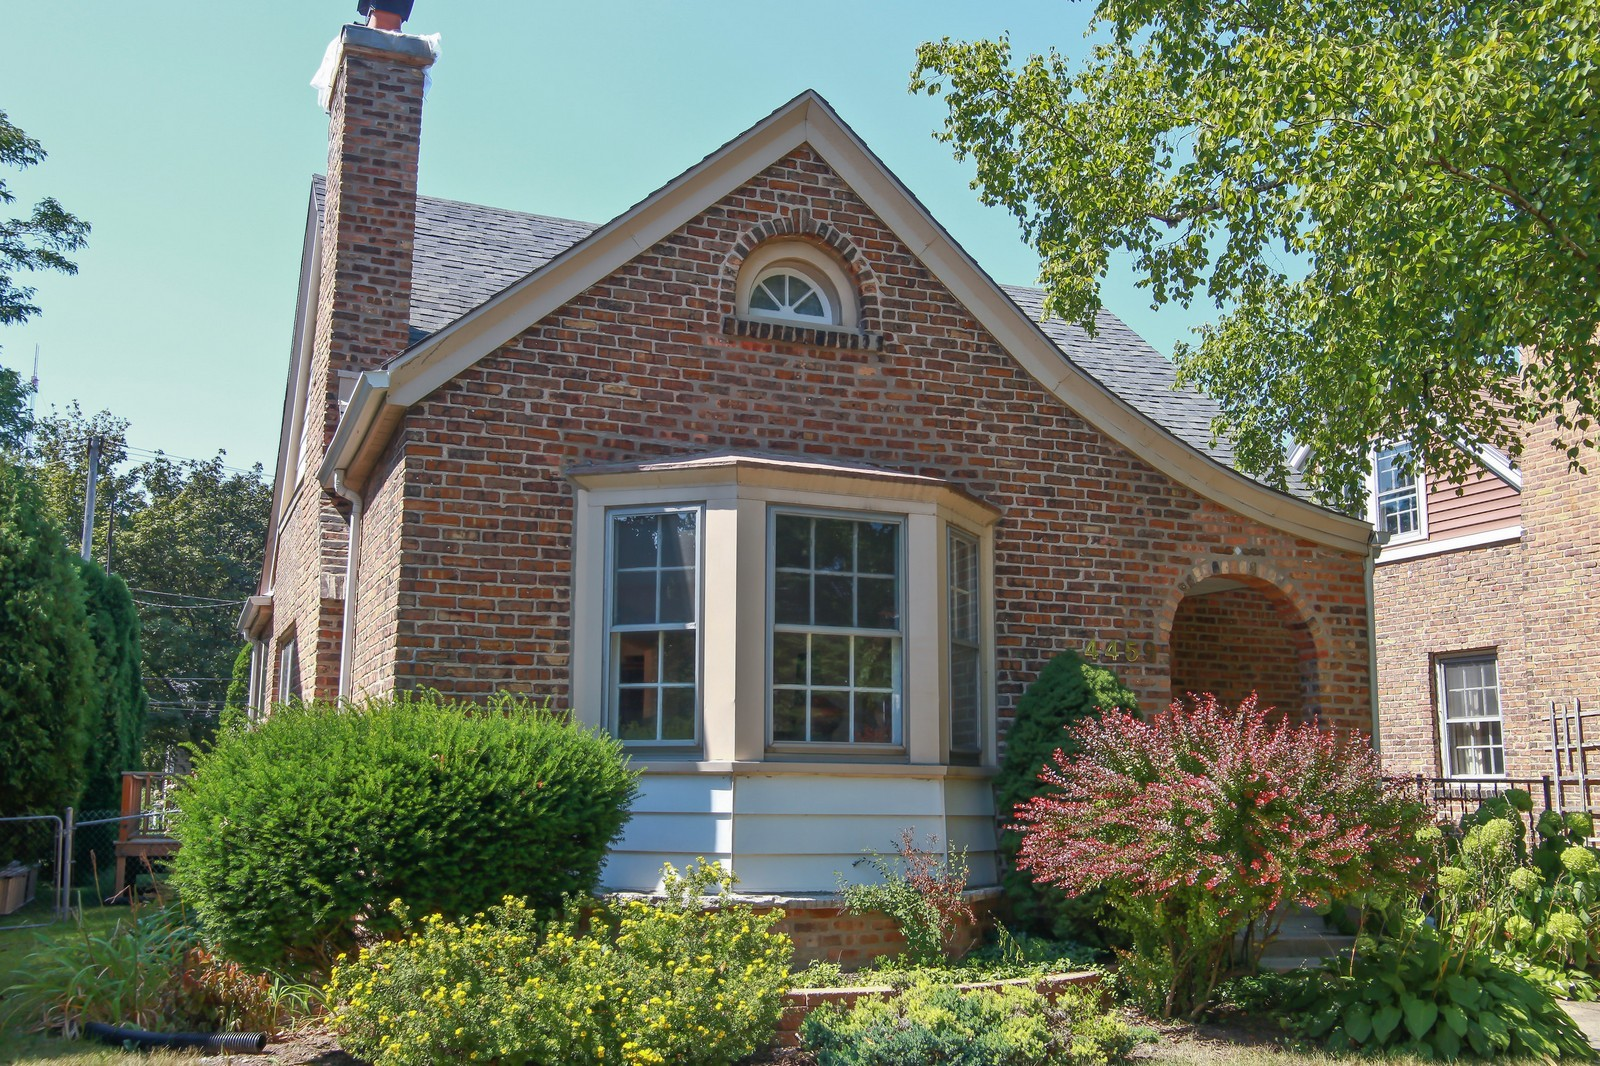 Real Estate Photography - 4459 N Newhall Ave, Shorewood, WI, 53211 - Front View